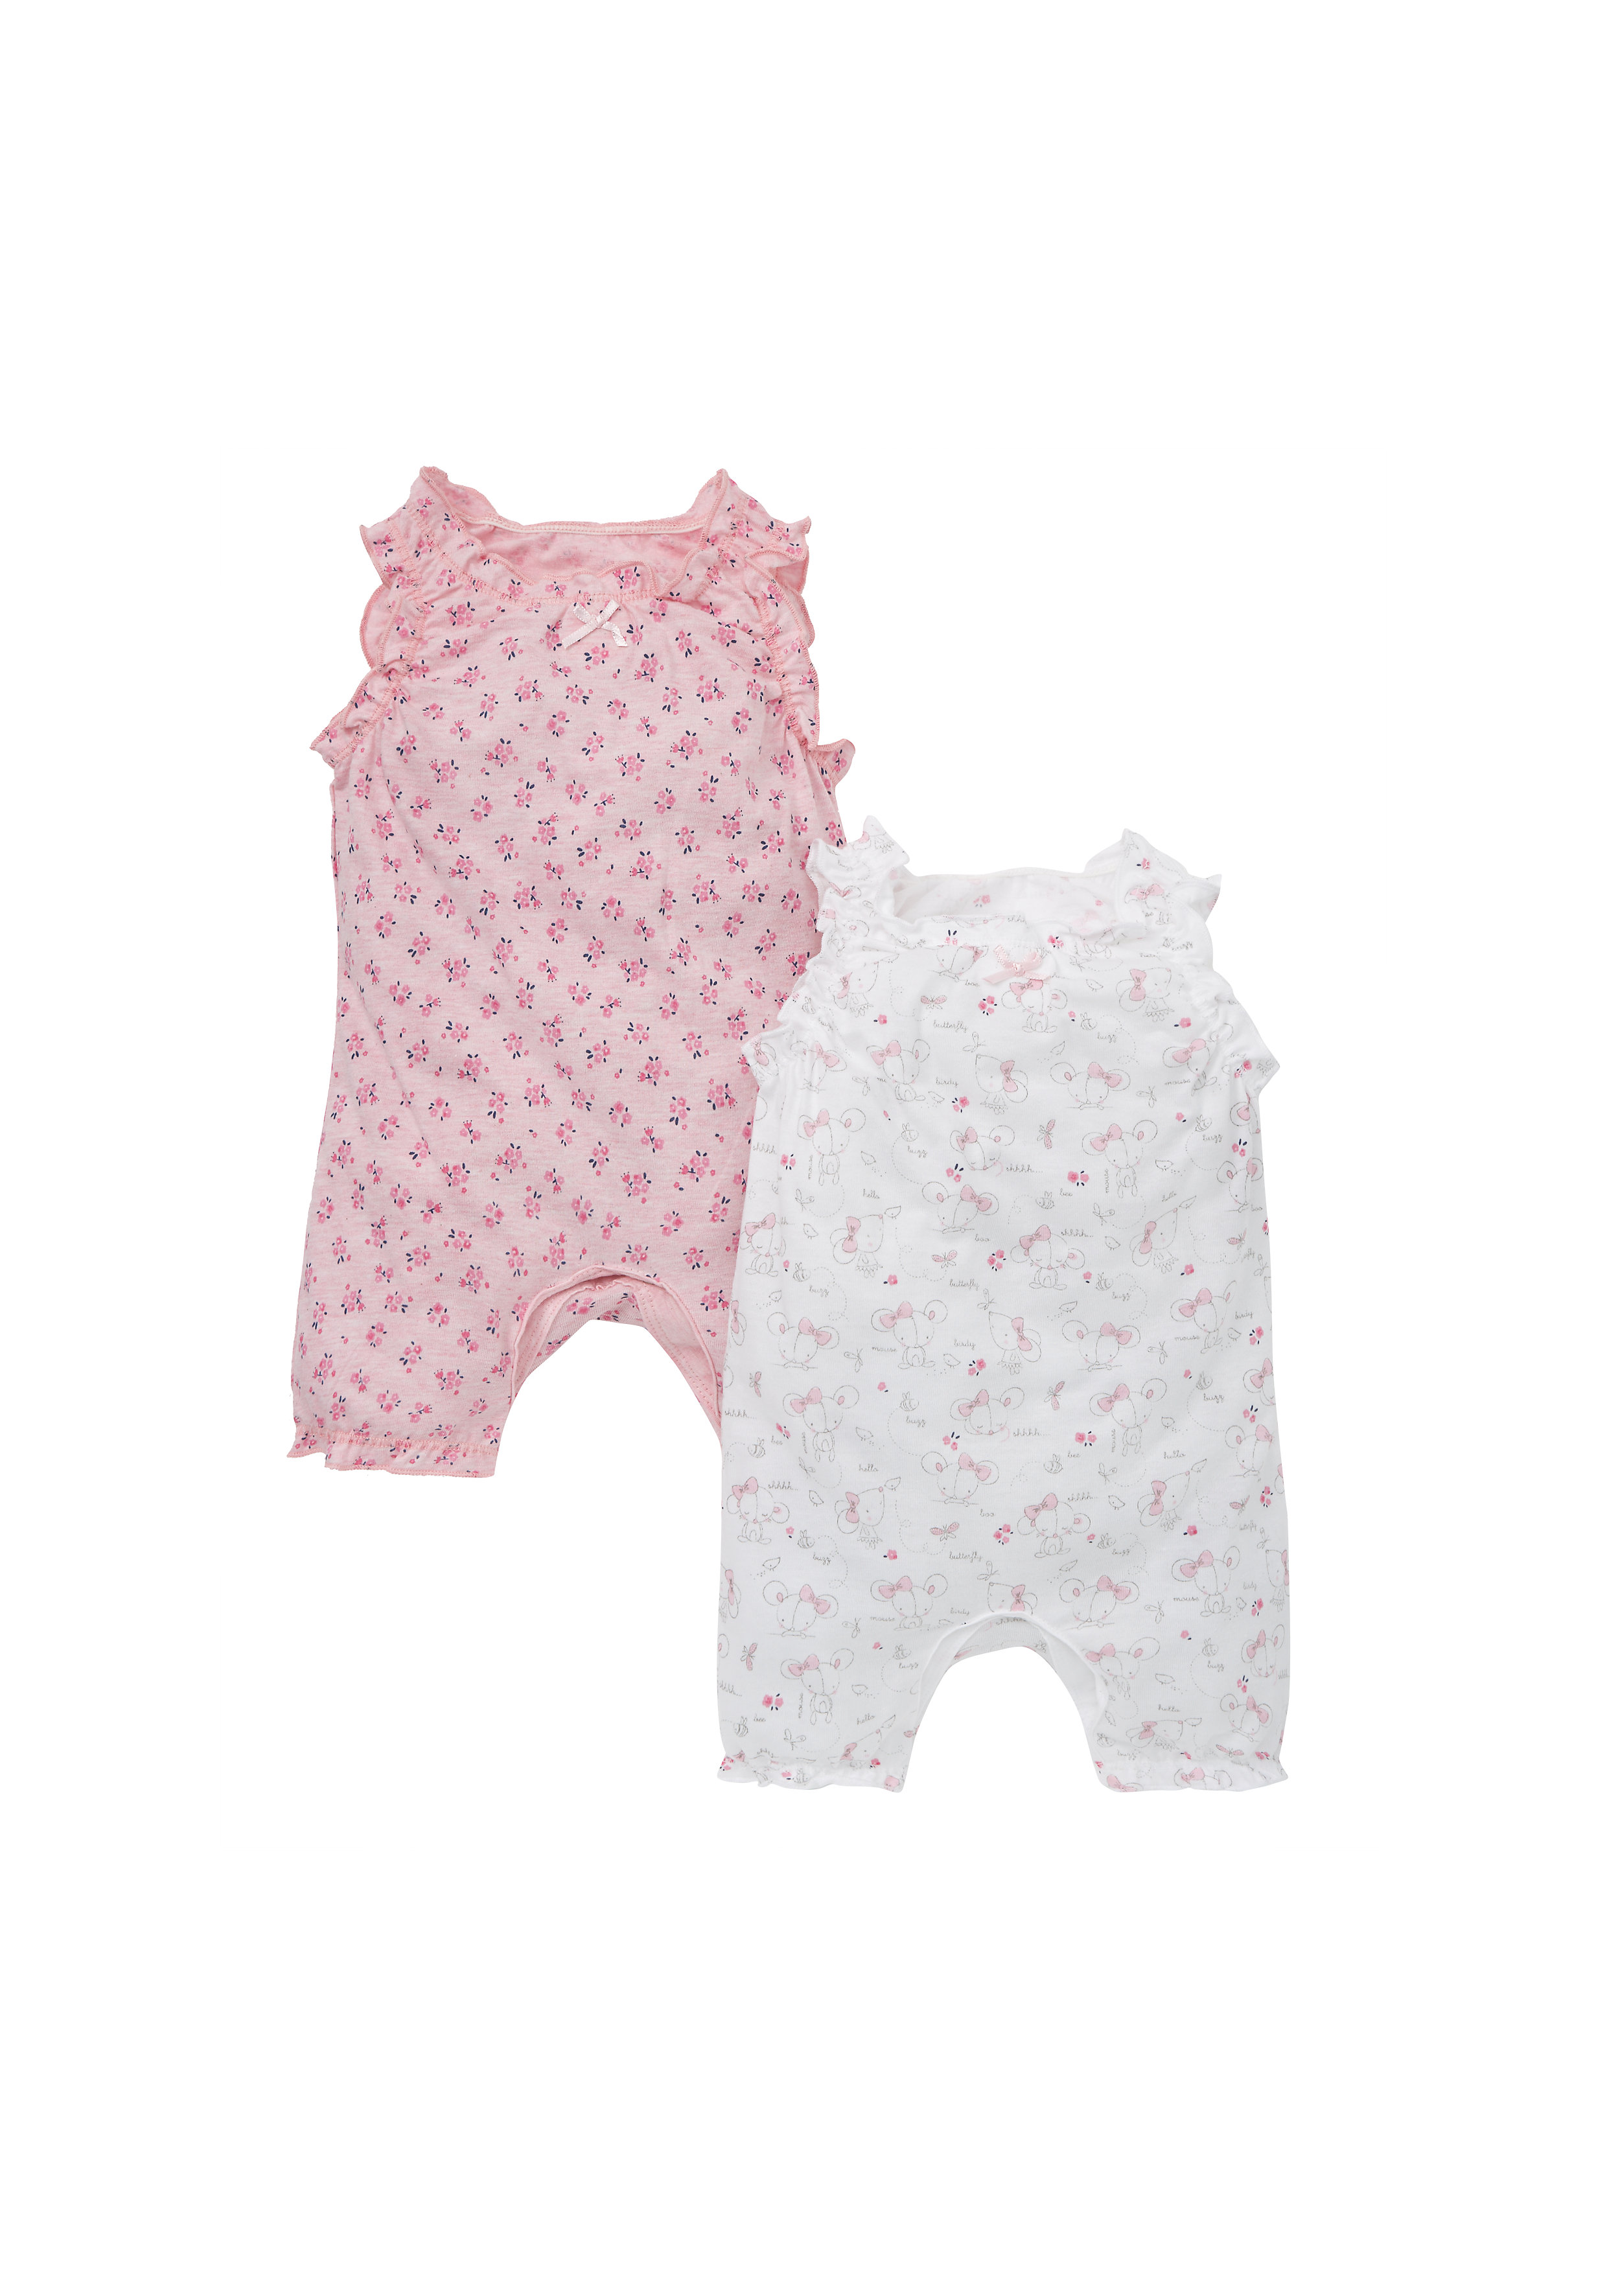 Mothercare | Girls Sleeveless Romper Mouse And Floral Print - Pack Of 2 - Pink